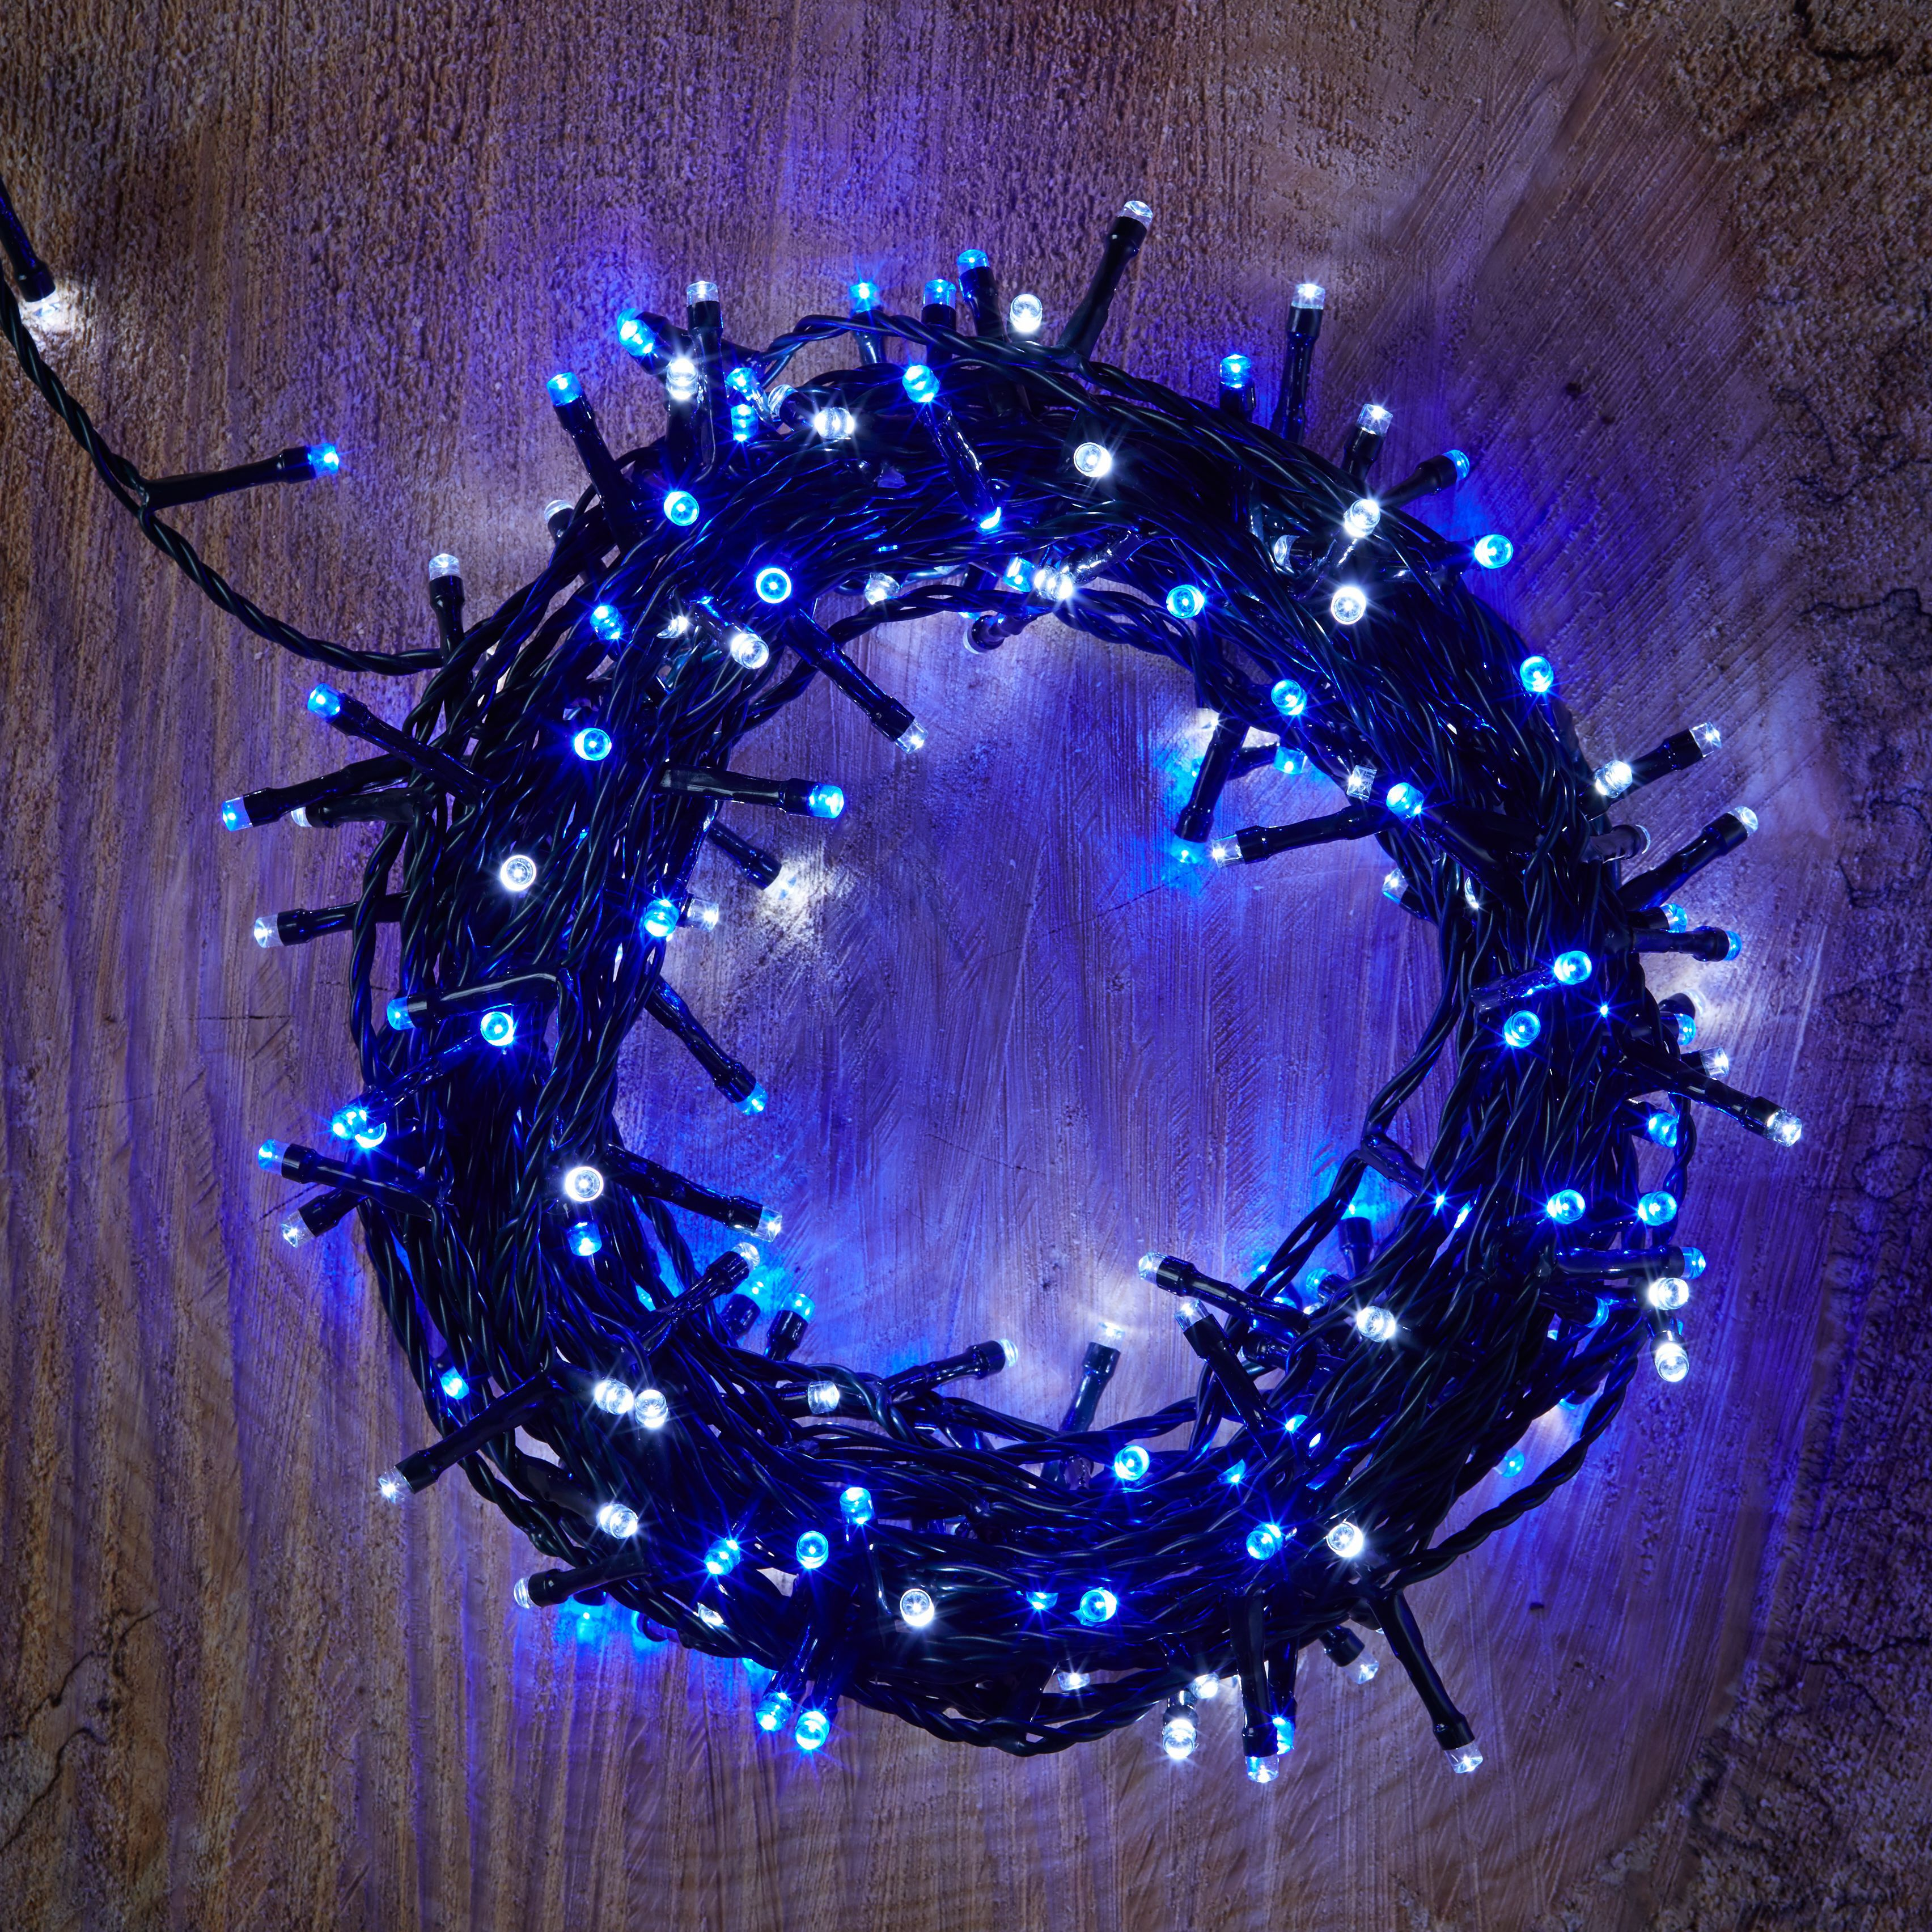 Led String Lights Diy : 240 Blue & White LED String Lights Departments DIY at B&Q